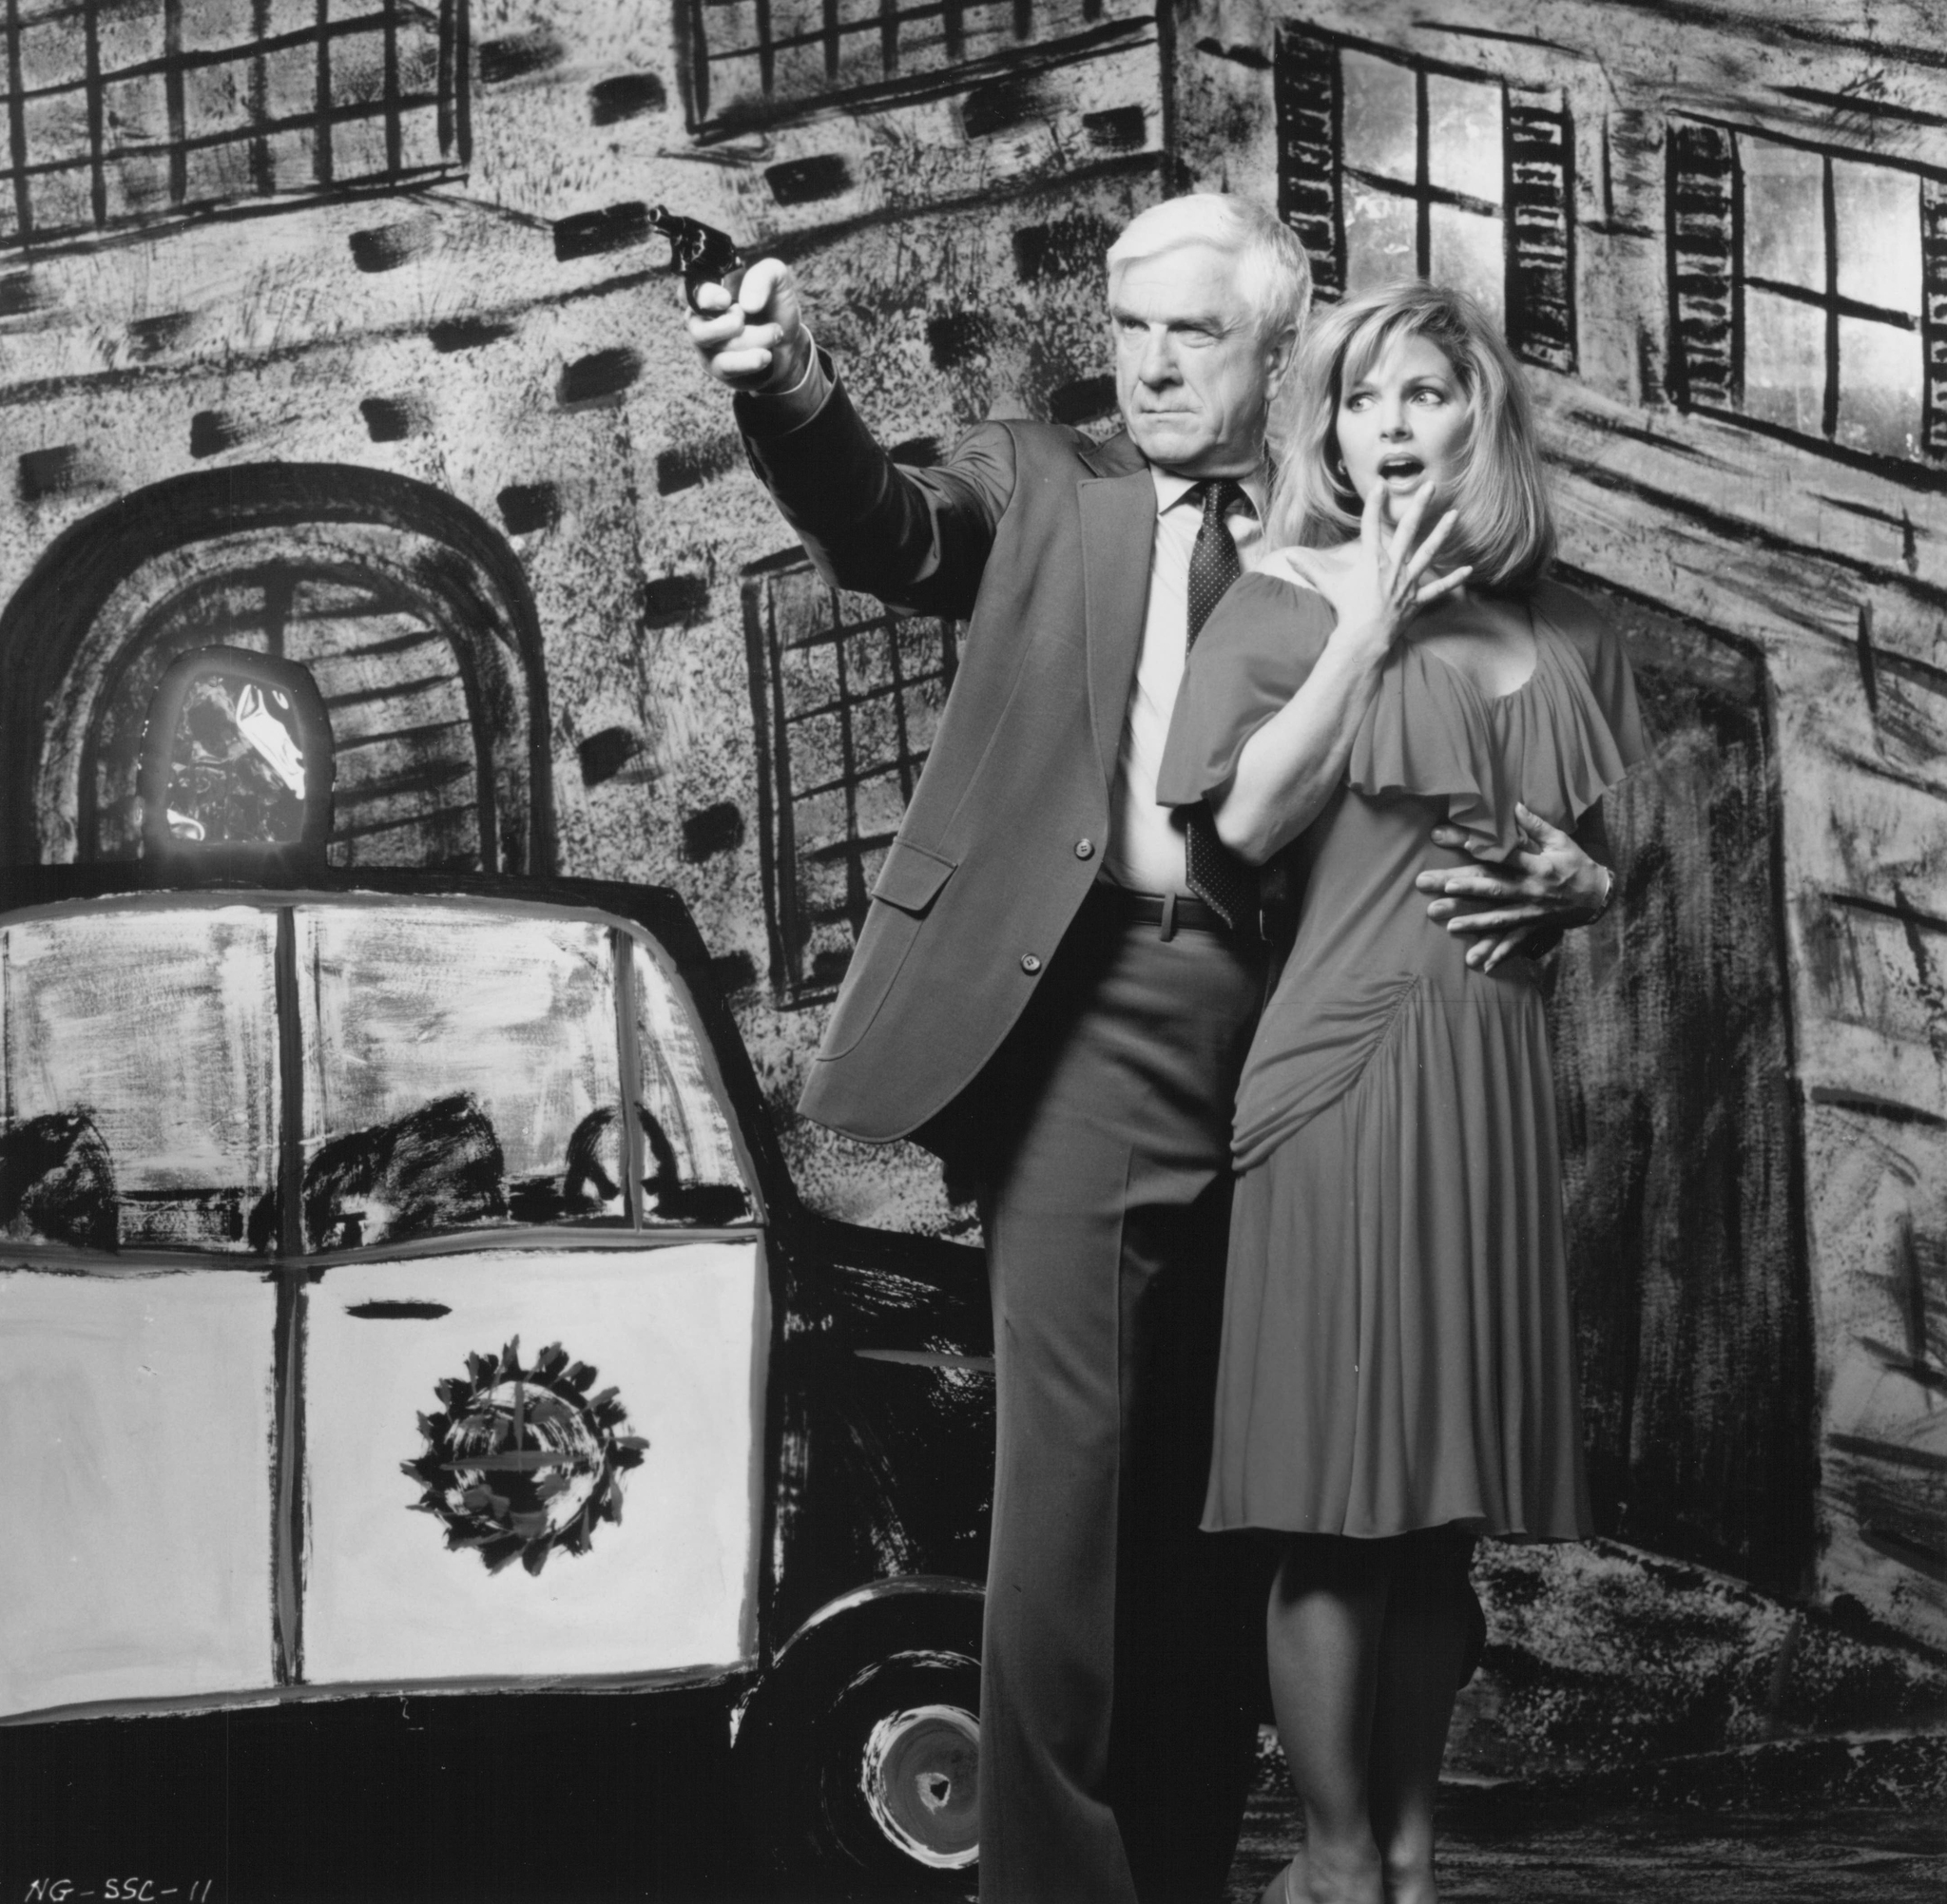 Leslie Nielsen and Priscilla Presley in The Naked Gun: From the Files of Police Squad! (1988)